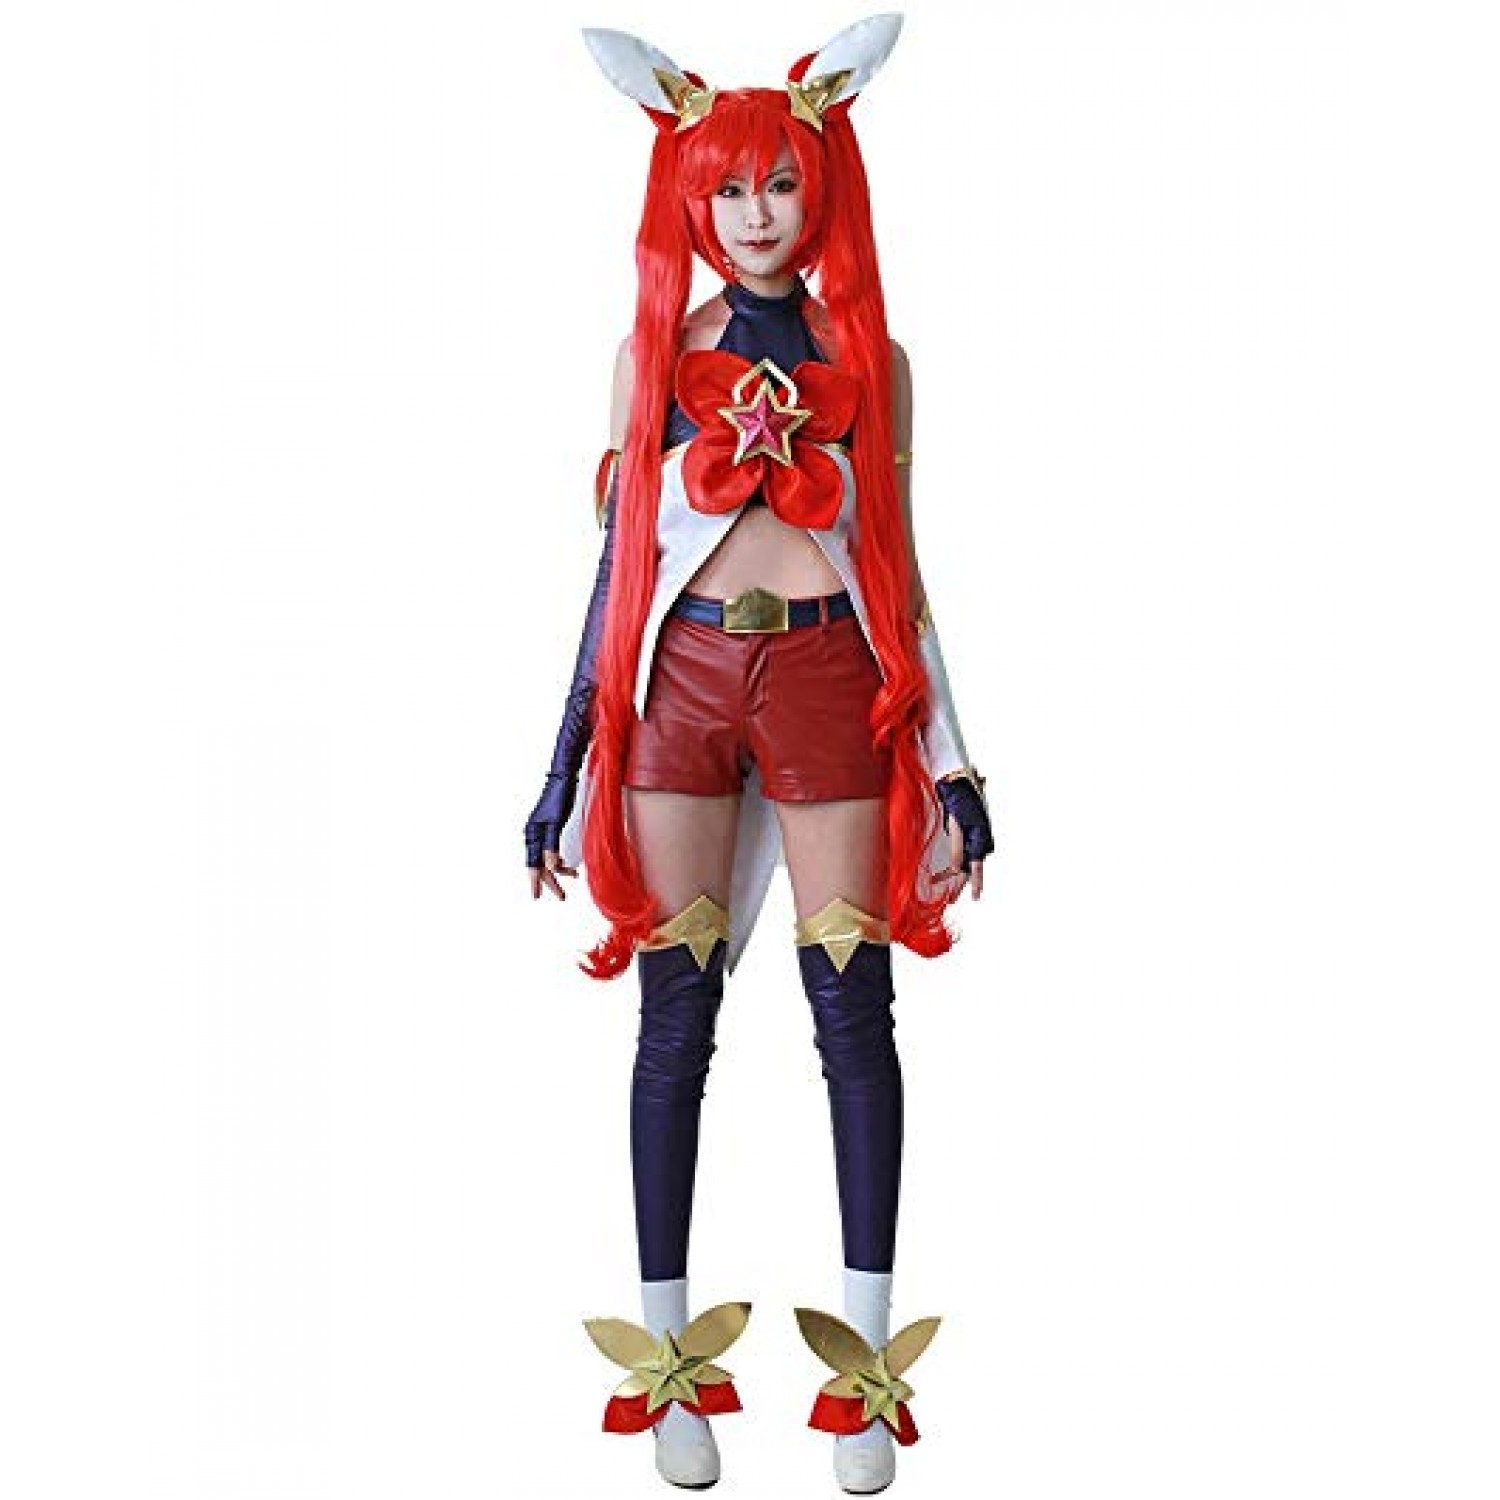 League of Legends Star Guardian Jinx Red Sweet Cosplay Costume